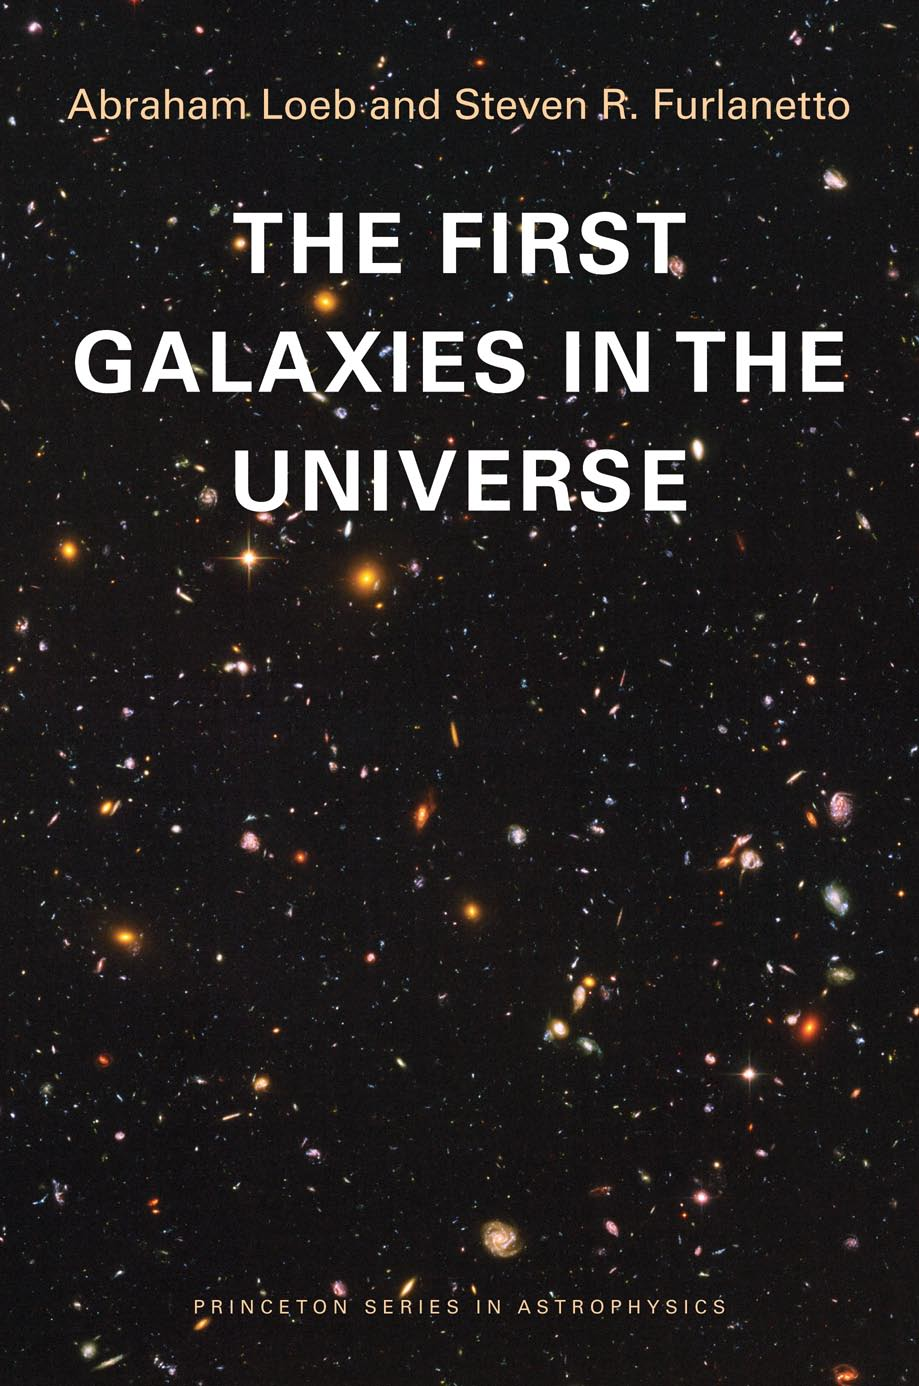 an essay on the galaxies of the universe Open document below is an essay on unit 9 cosmology from anti essays, your source for research papers, essays, and term paper examples.